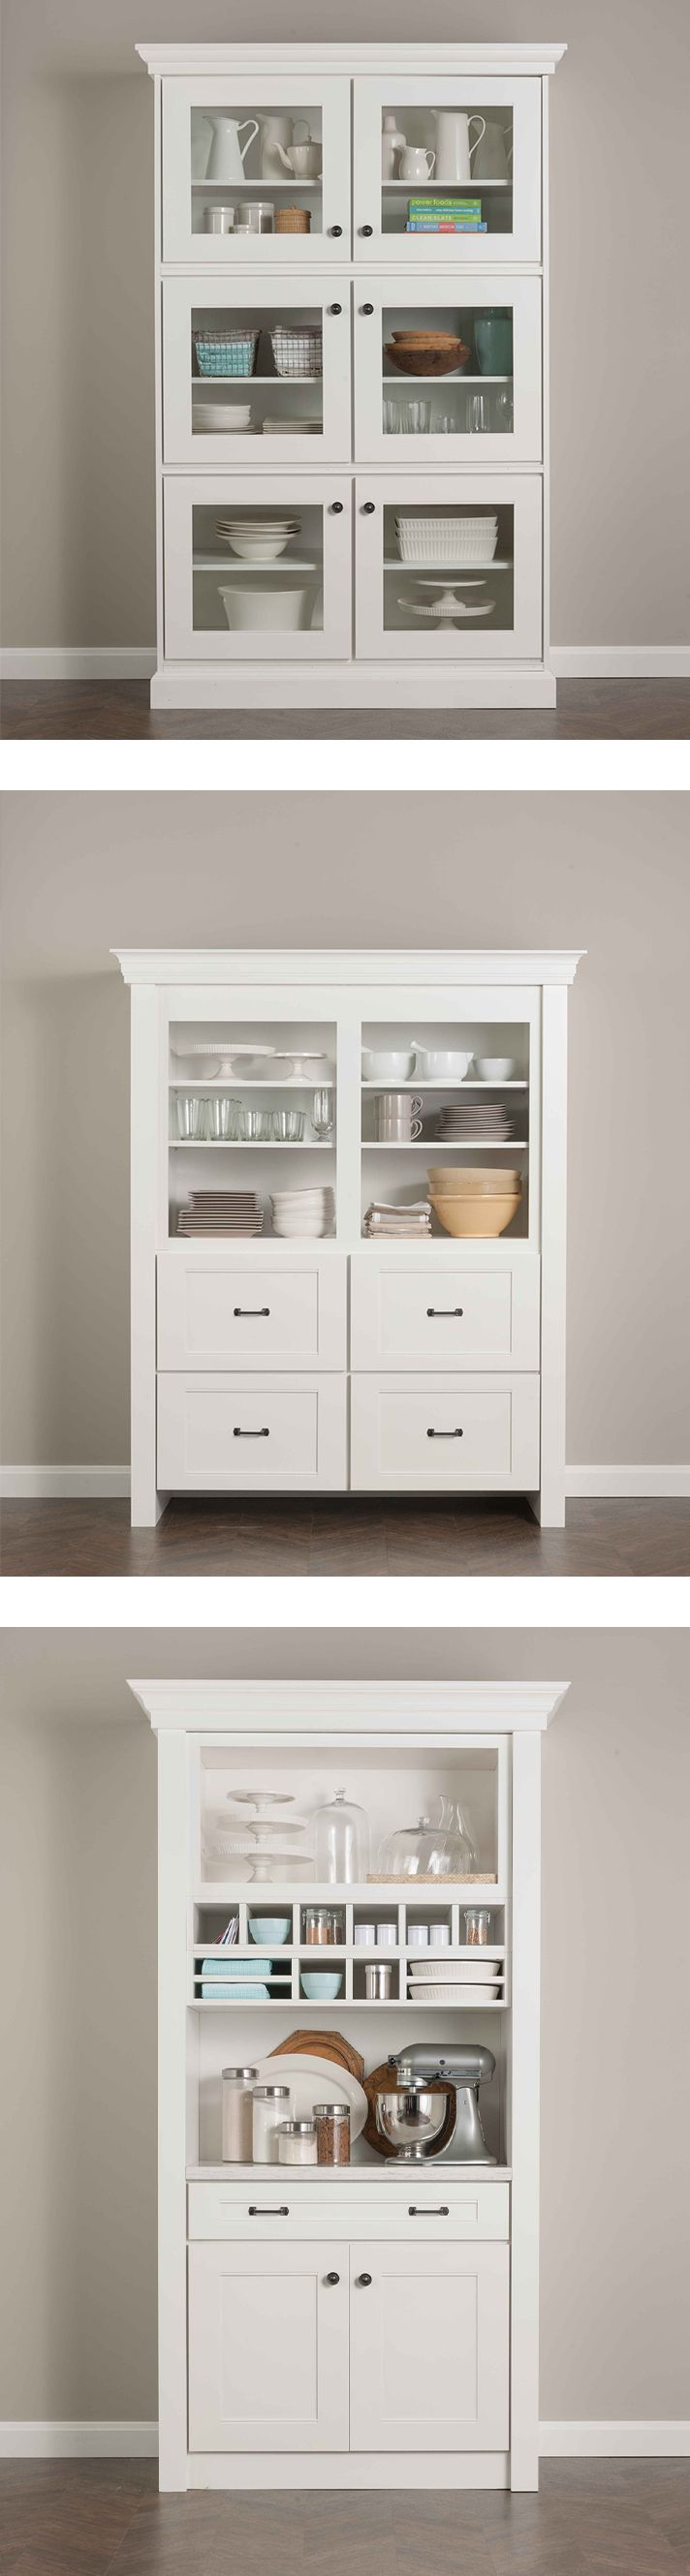 kitchens and dining rooms martha stewart kitchen cabinets Creative Design Tip Create standalone pieces like this hutch using Martha Stewart Living Kitchen Cabinetry from They have the beauty and detail of